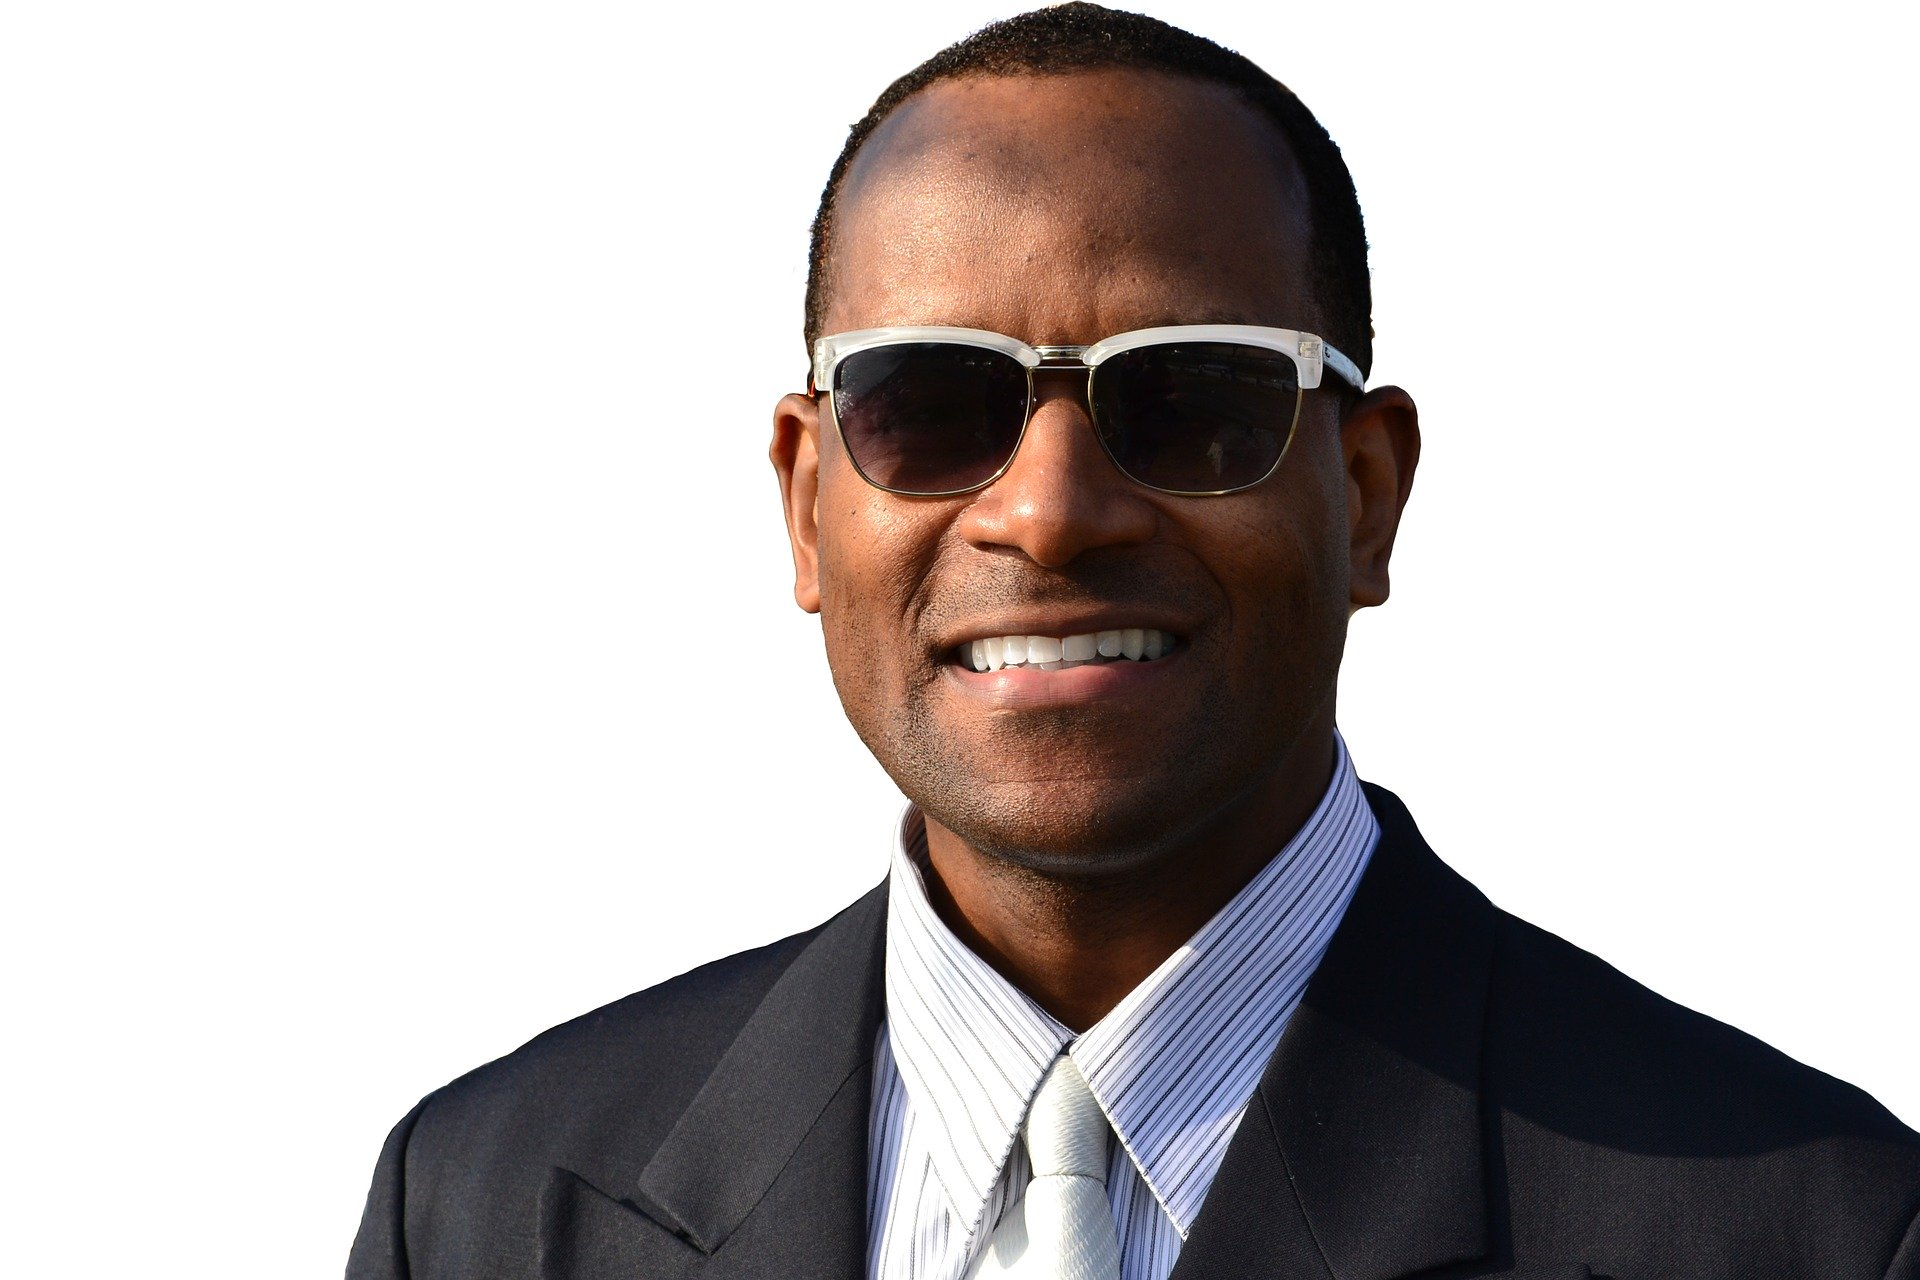 African American man wearing business suit and tie, fashionable sunglasses